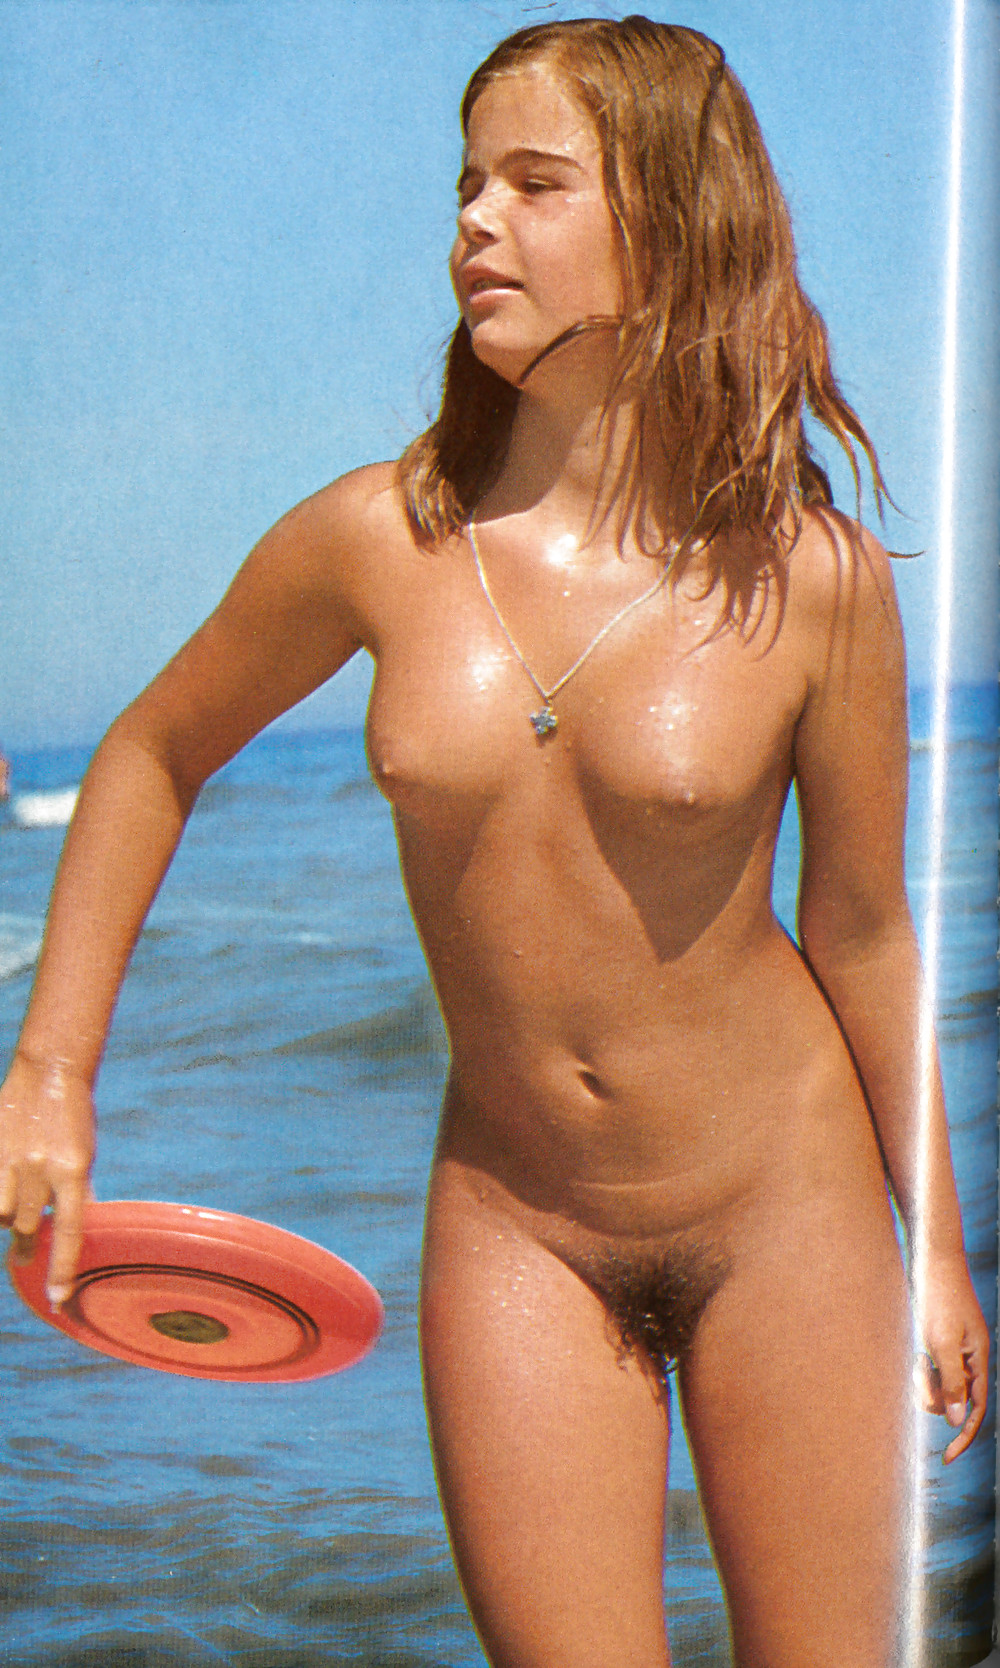 young retro nudist girl